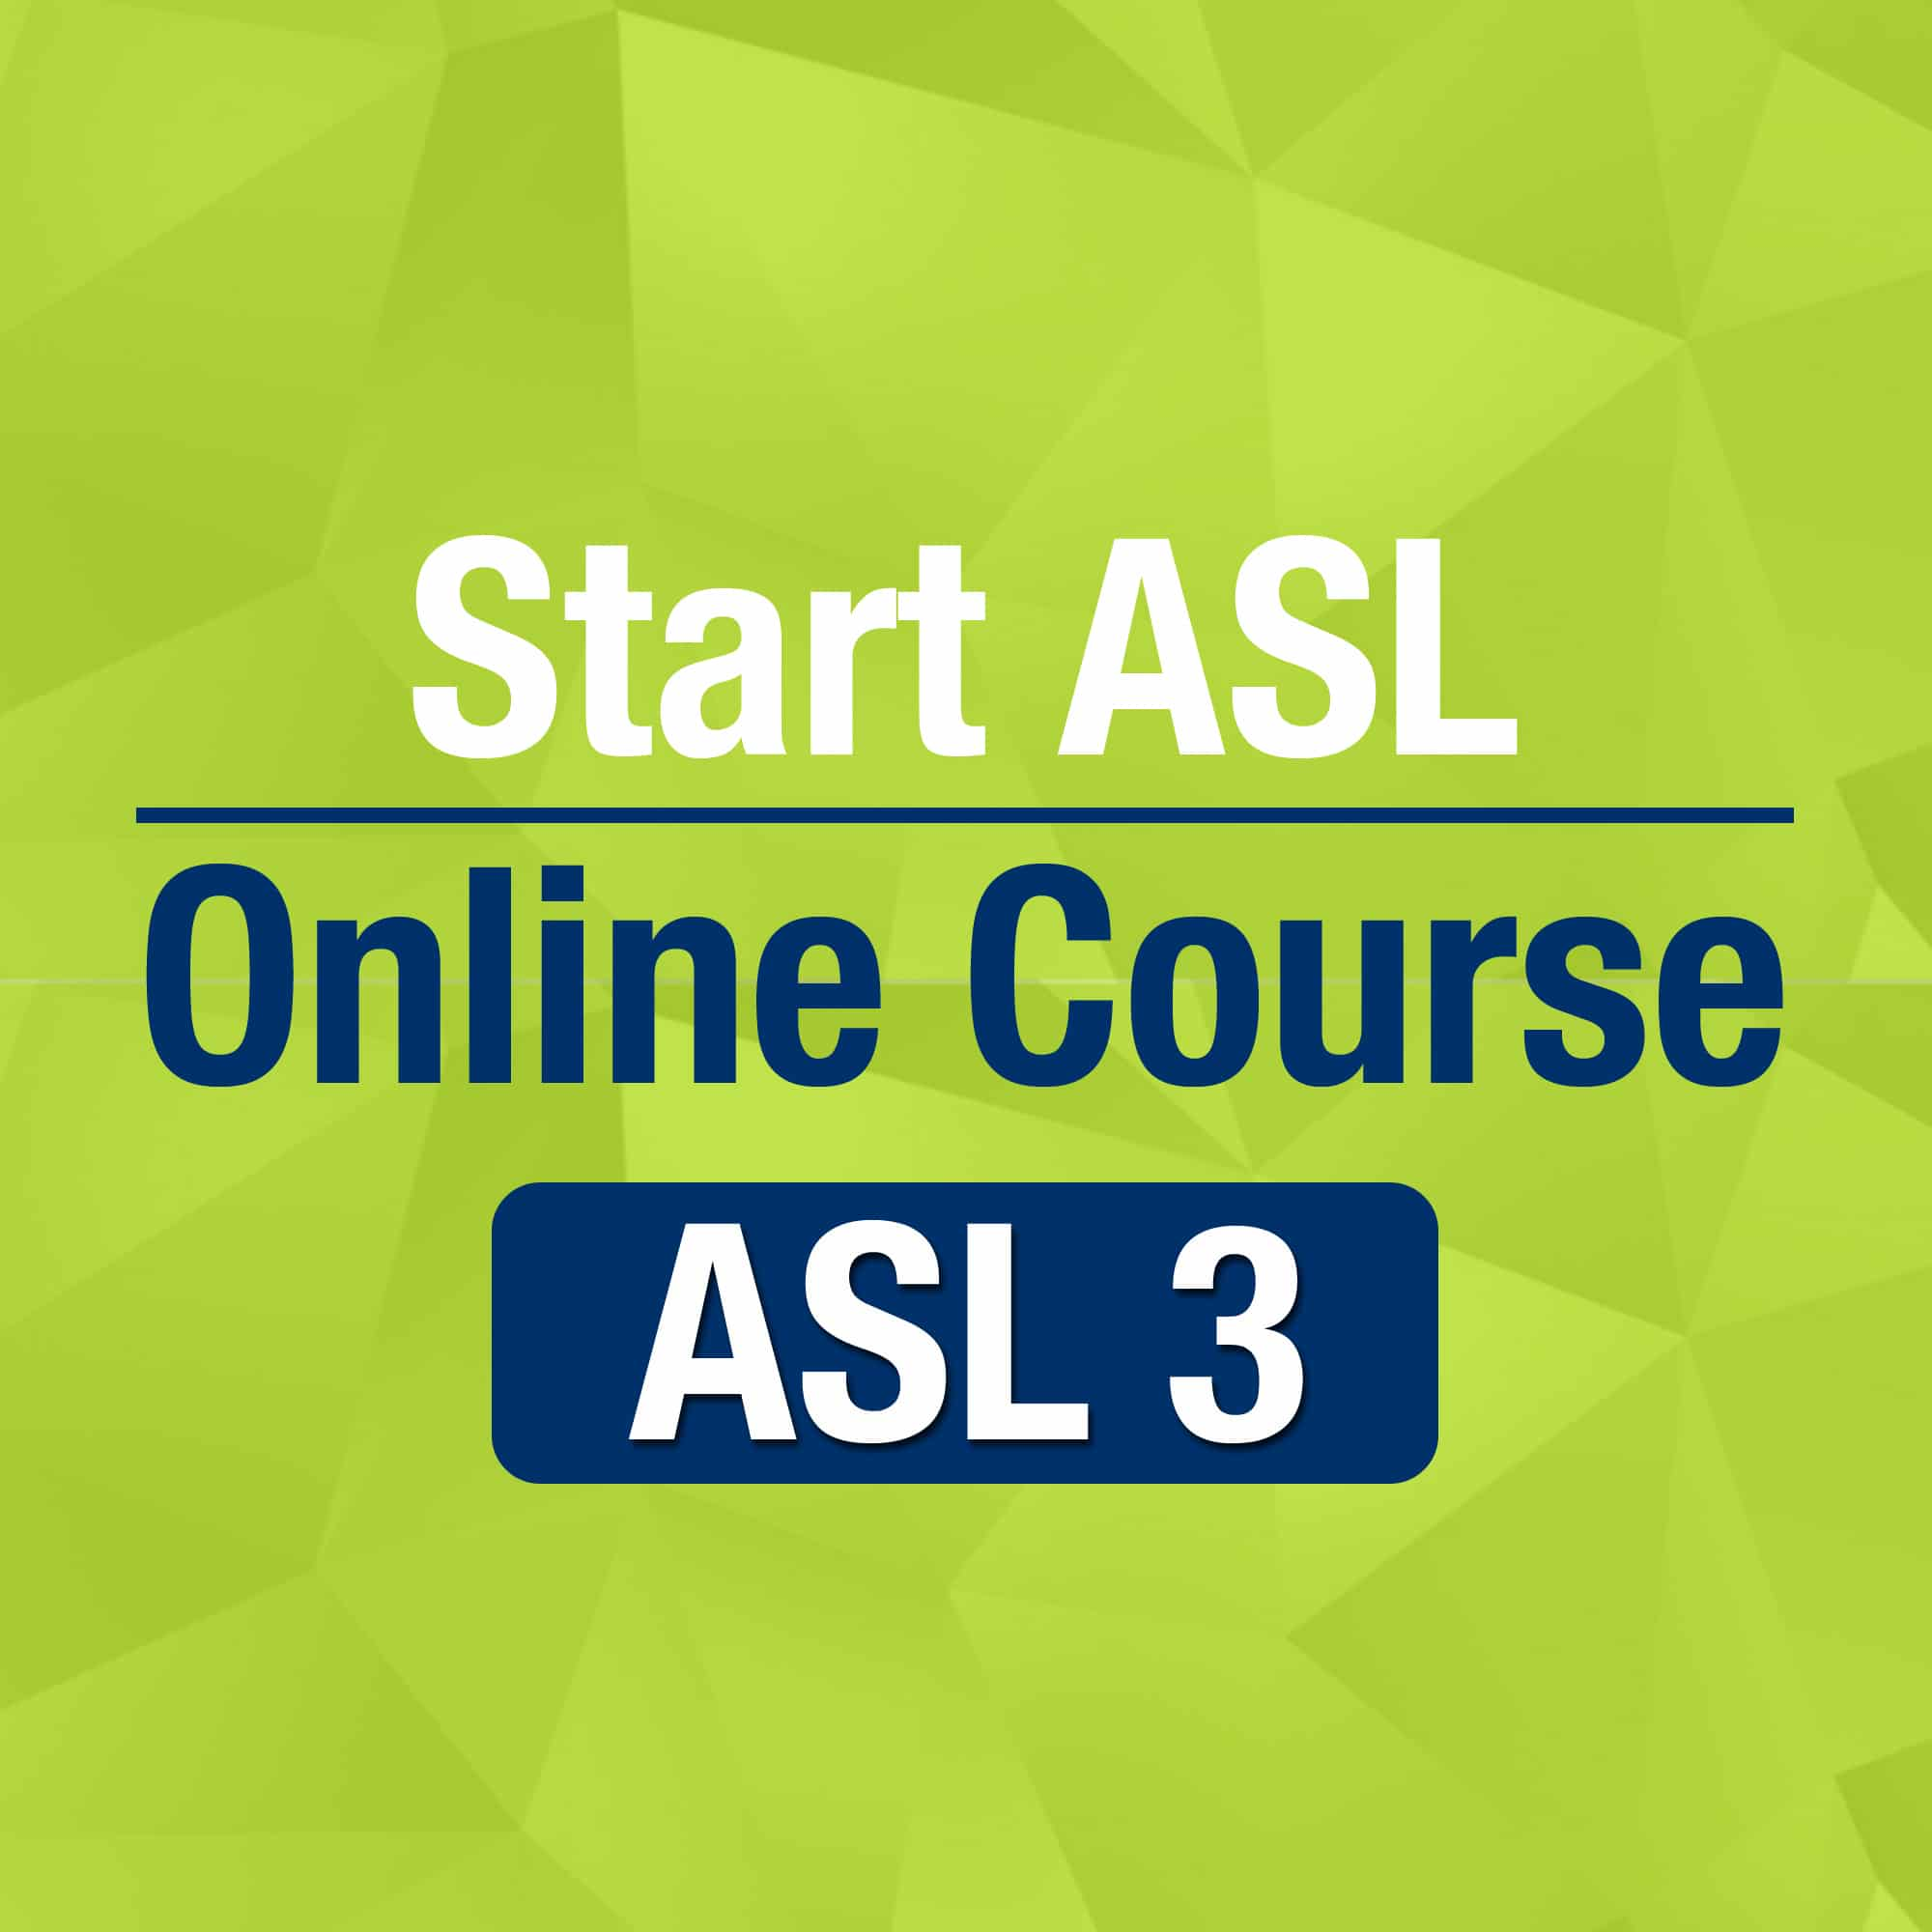 Start ASL 3 Online Course